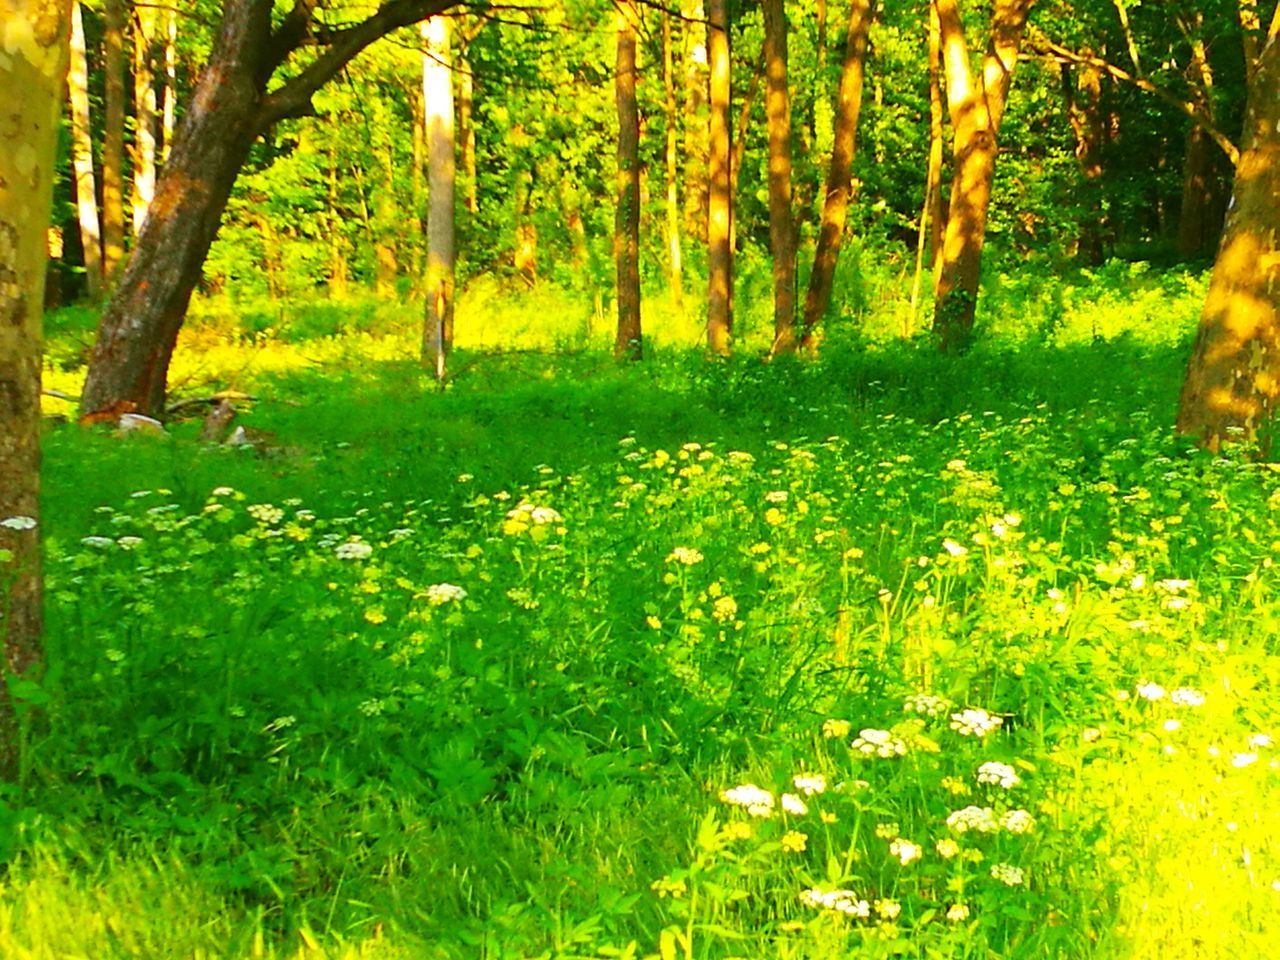 nature, forest, tree, growth, beauty in nature, grass, tranquility, day, outdoors, lush foliage, green color, tranquil scene, no people, plant, scenics, tree trunk, flower, freshness